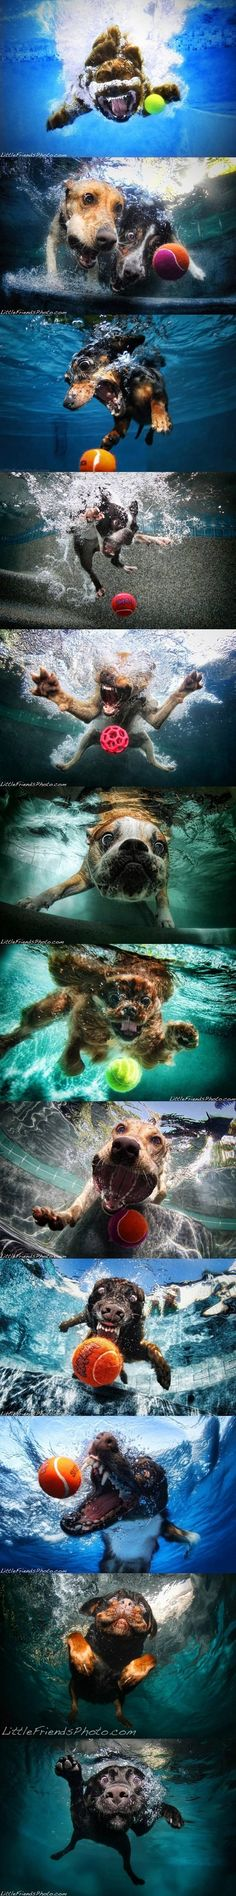 Diving for the ball in the water -- how cute are these faces?!... The 3rd dog looks just like mine!!!